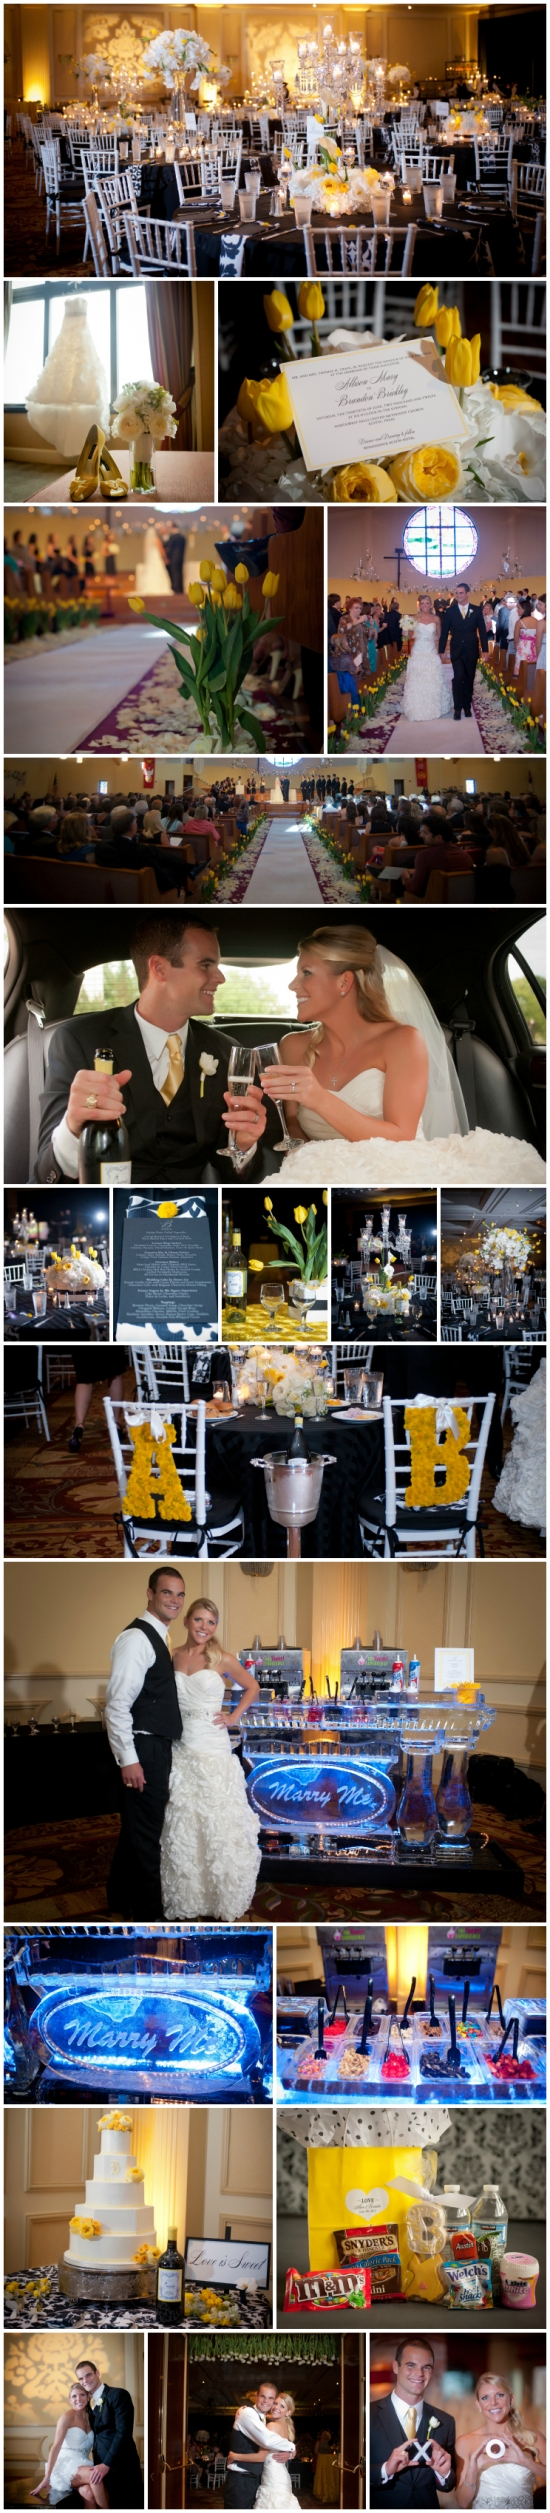 Alli + Brandon's Yellow Real Wedding with FroYo ice bar by Your Very Own Fairy Godmother in Austin, TX